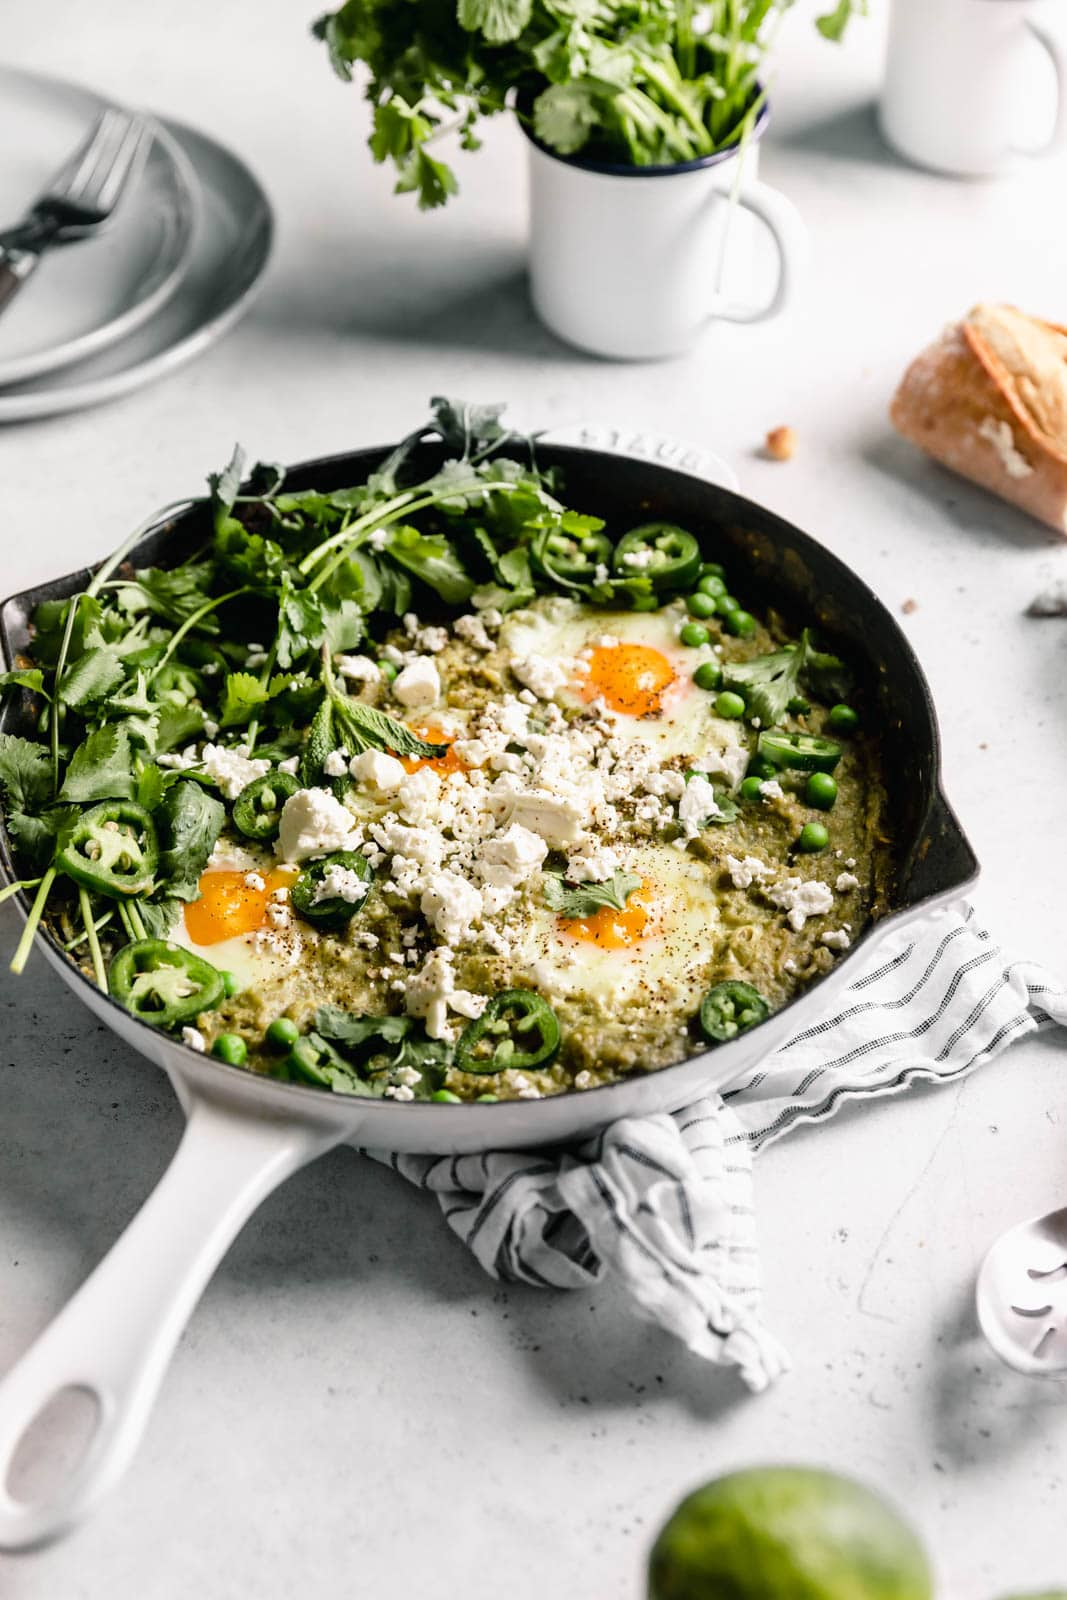 Green Shakshuka aka poached eggs cooked in a spiced green tomato sauce and topped with cilantro and feta. Talk about the best breakfast ever!